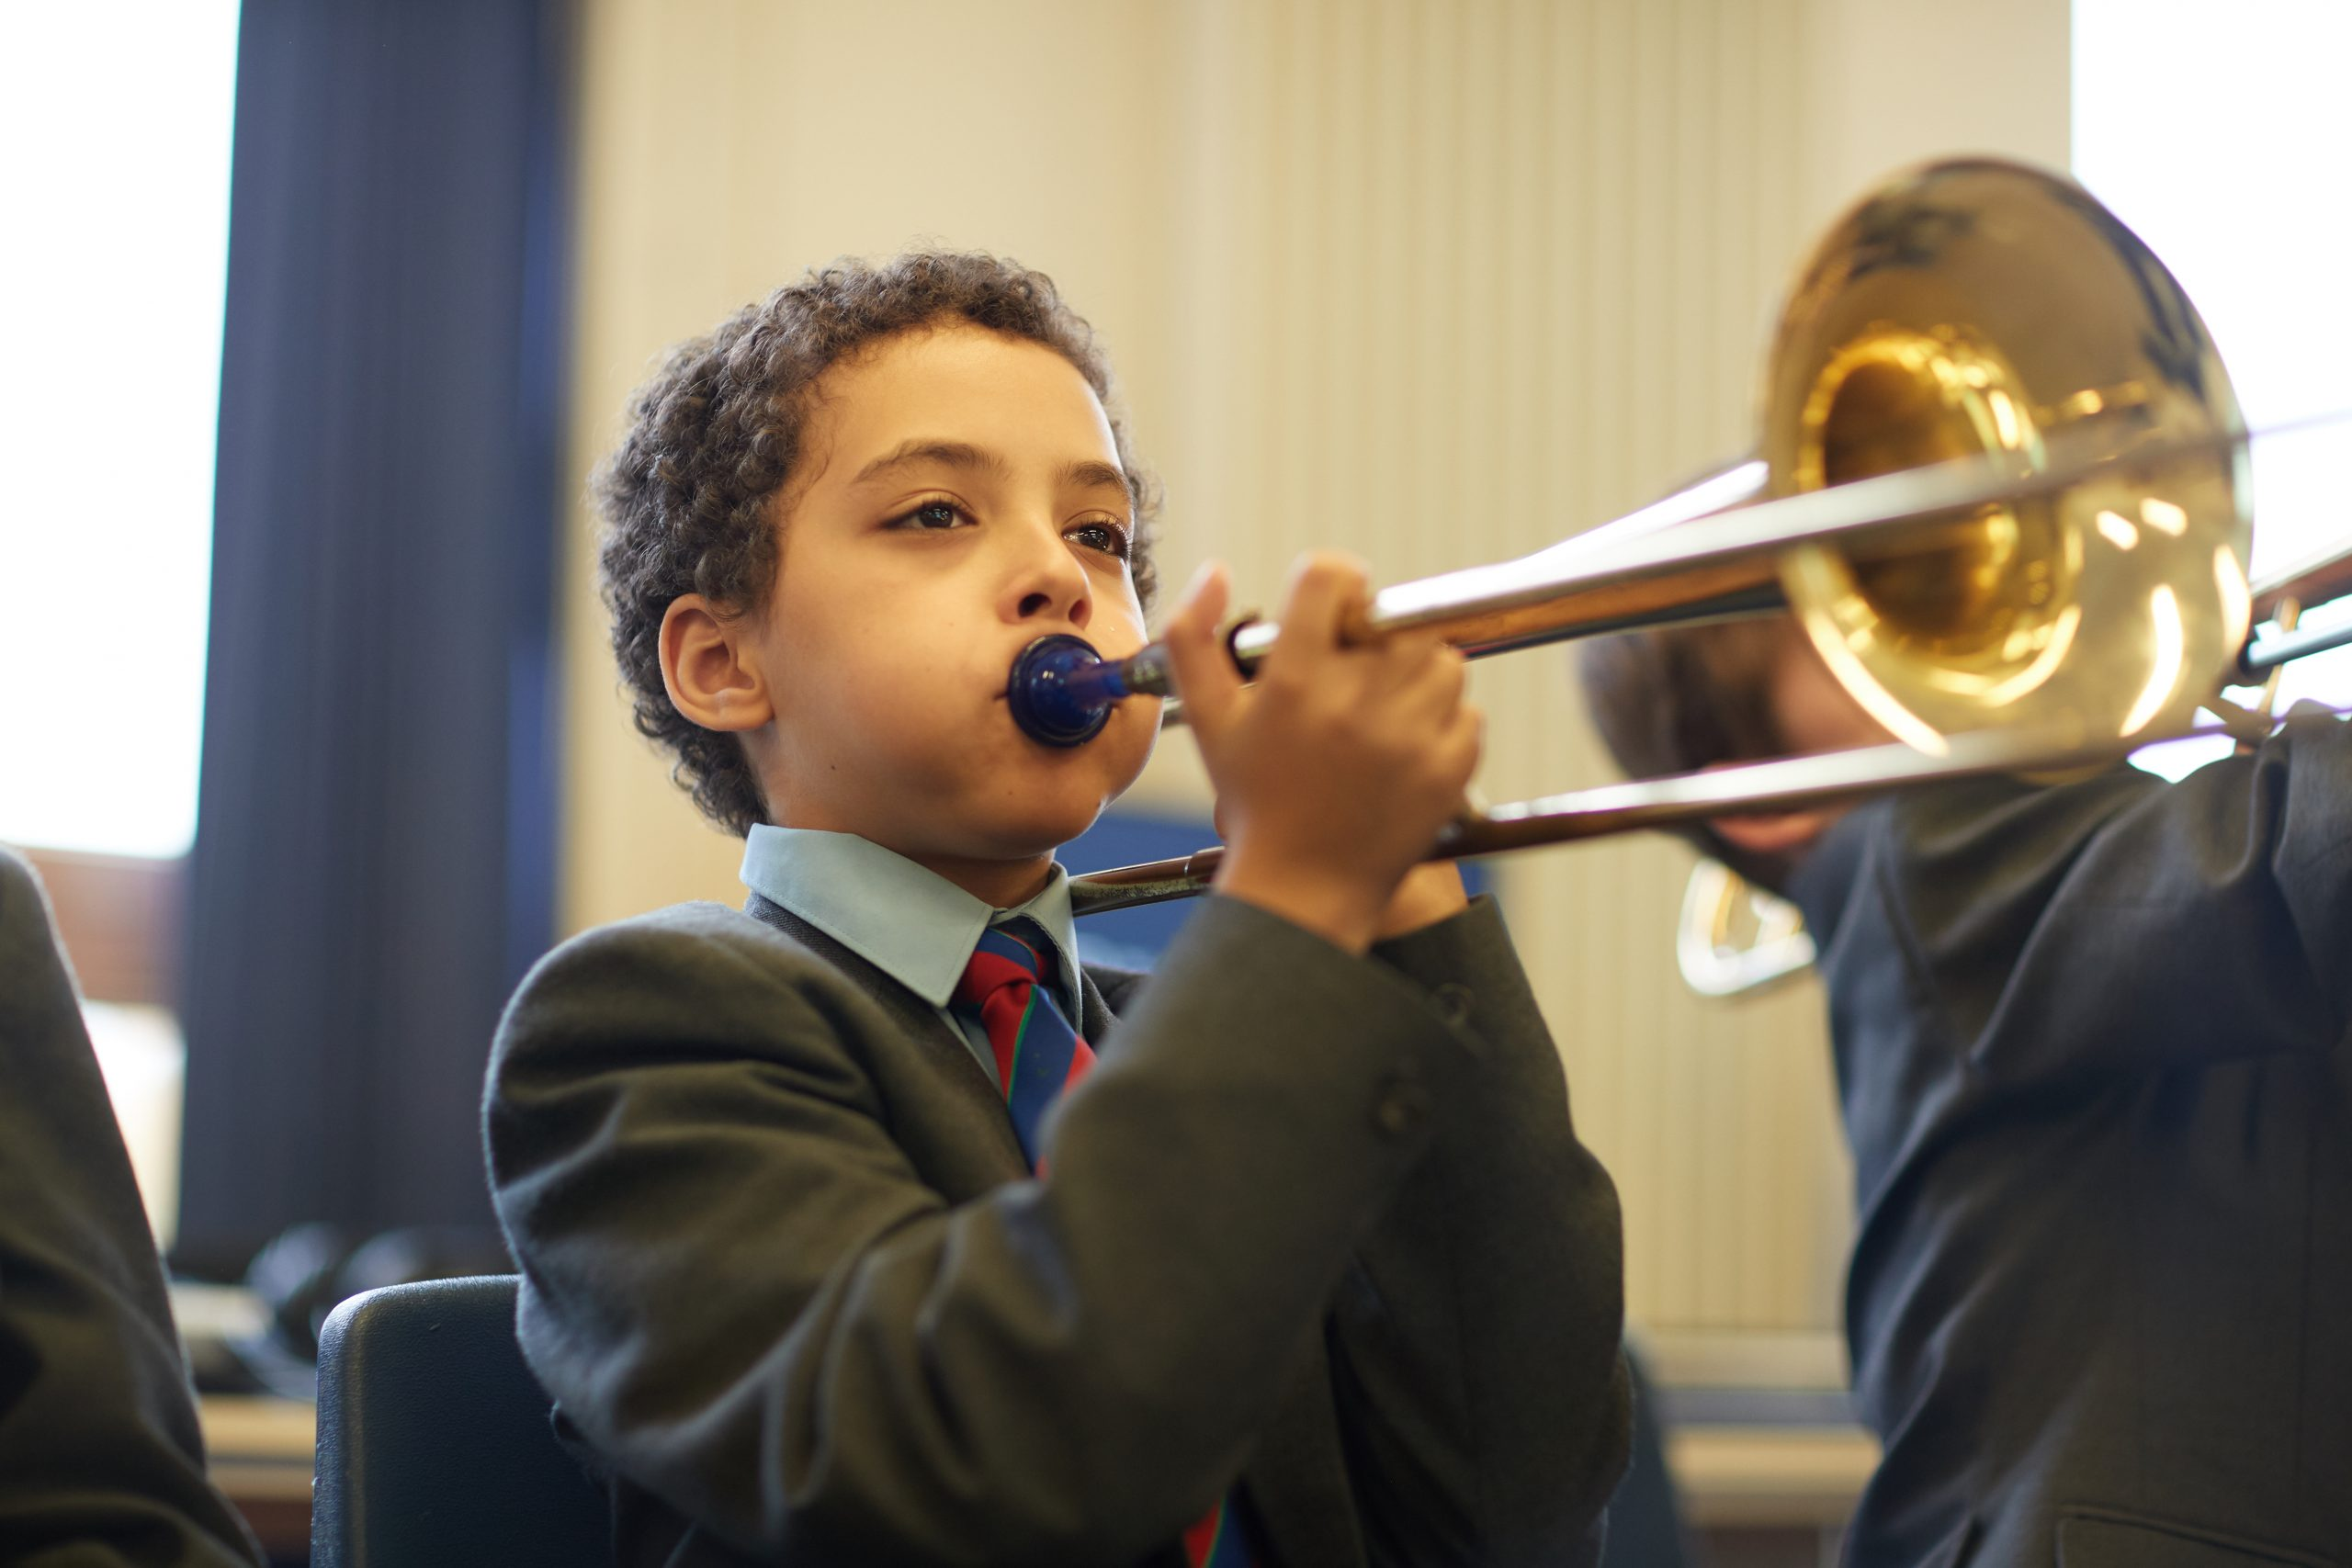 Year 6 pupil playing trombone